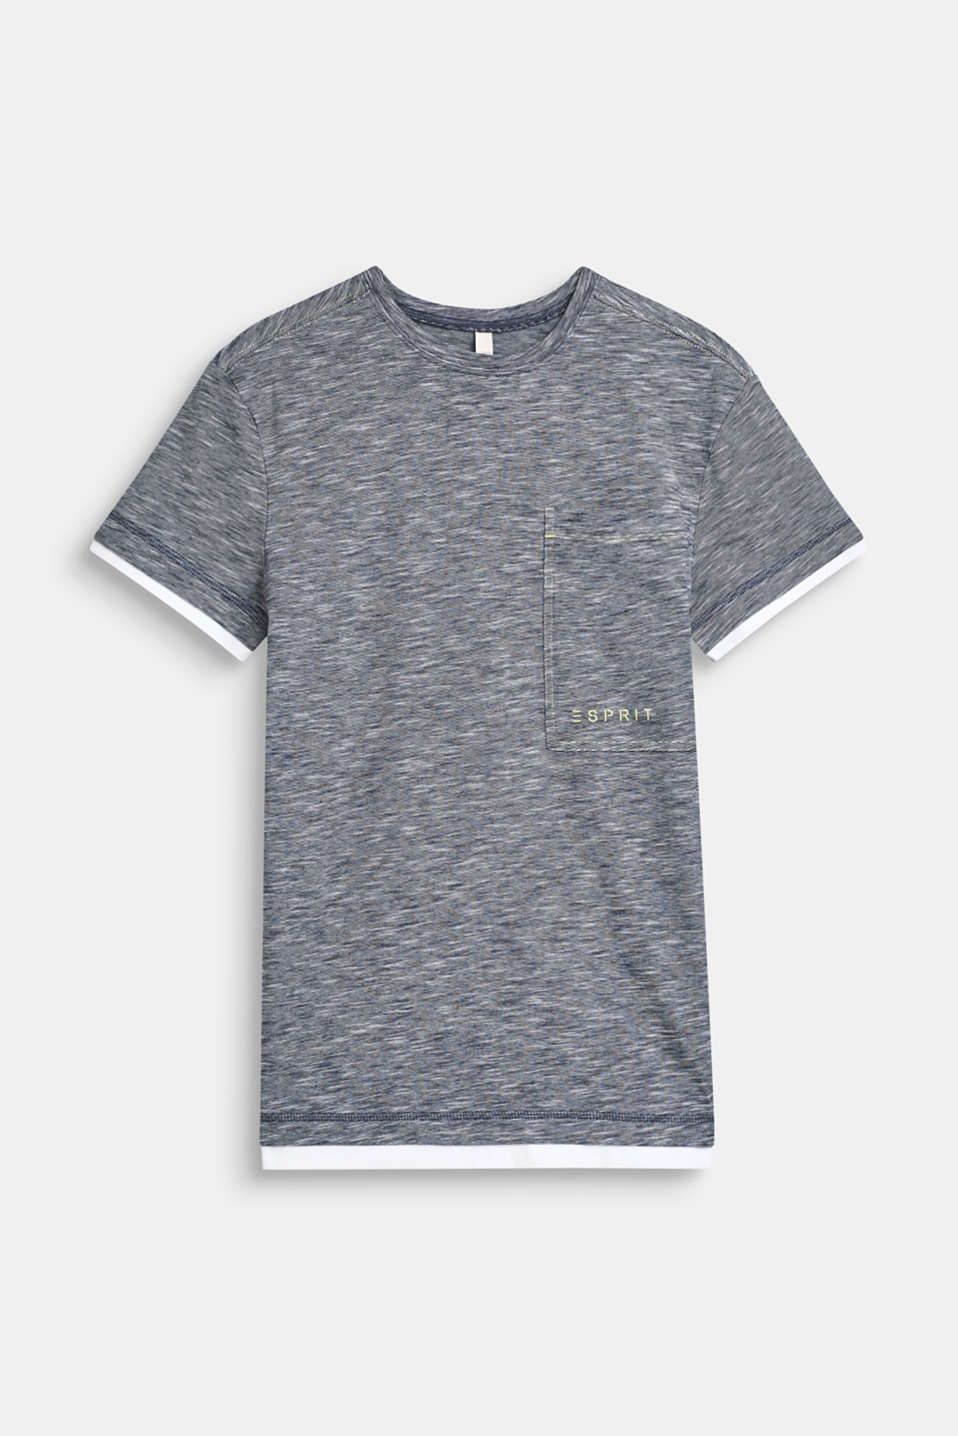 Esprit - Melange layered T-shirt, 100% cotton